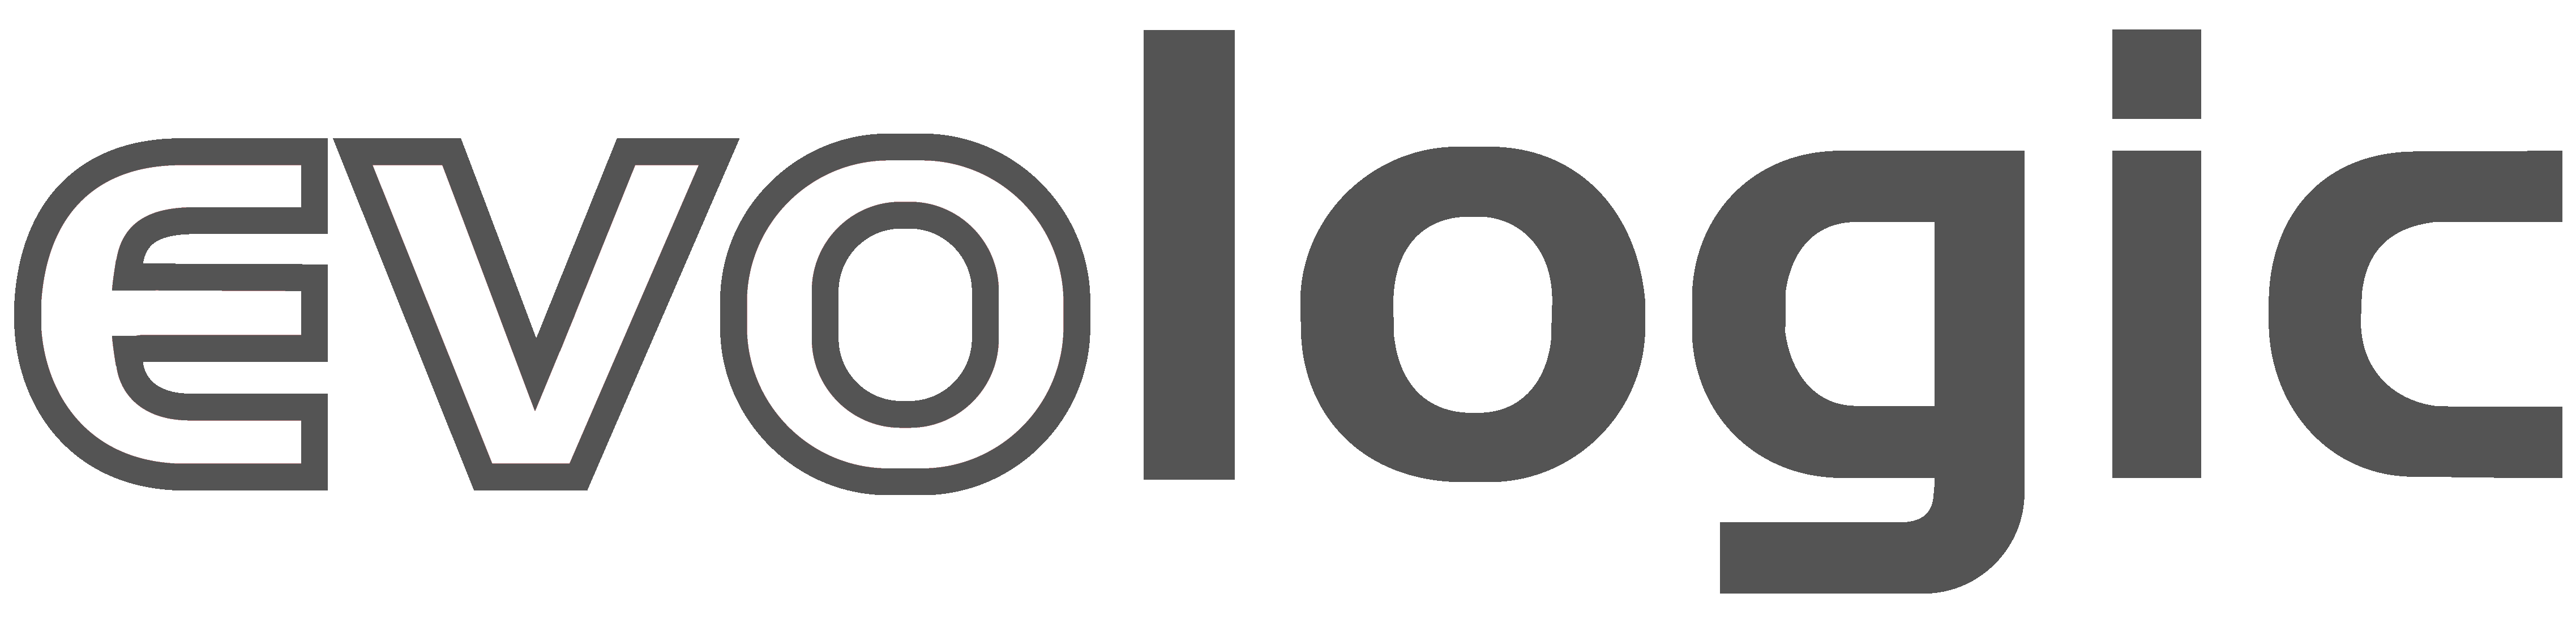 Evologic transparent logo